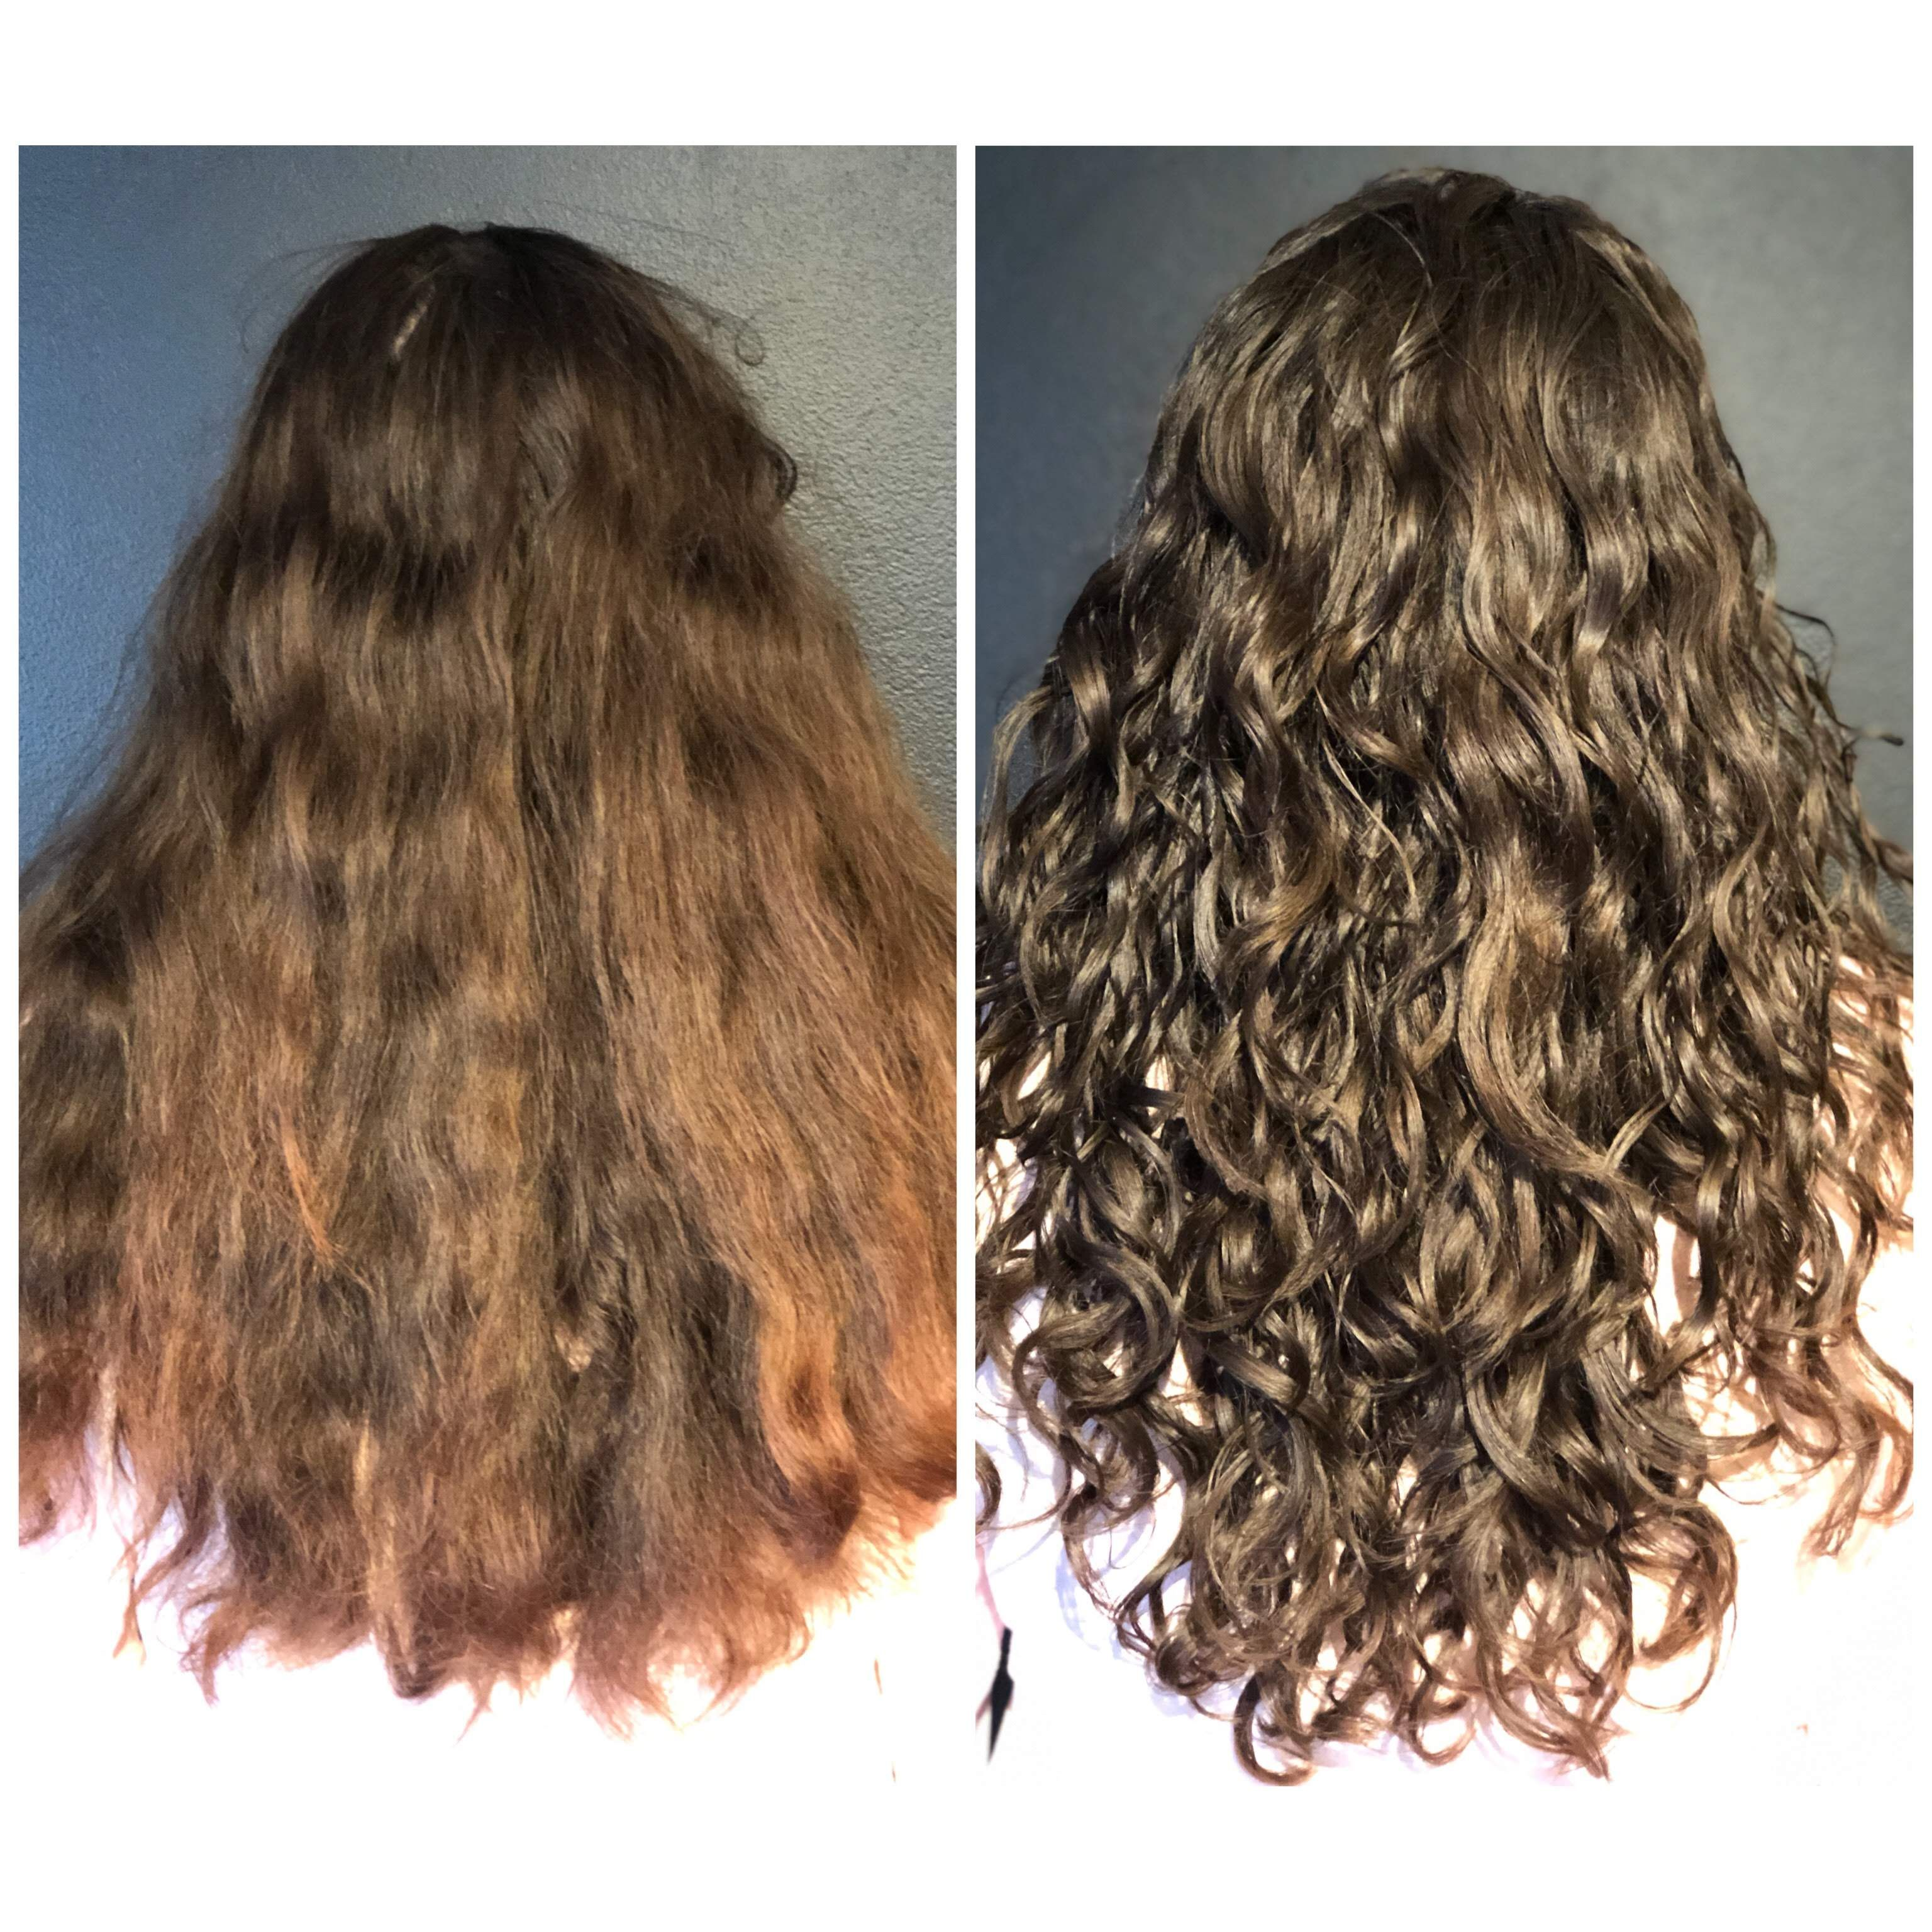 Ouidad Curly Hair Style by Adored Salon in 12  Curly hair